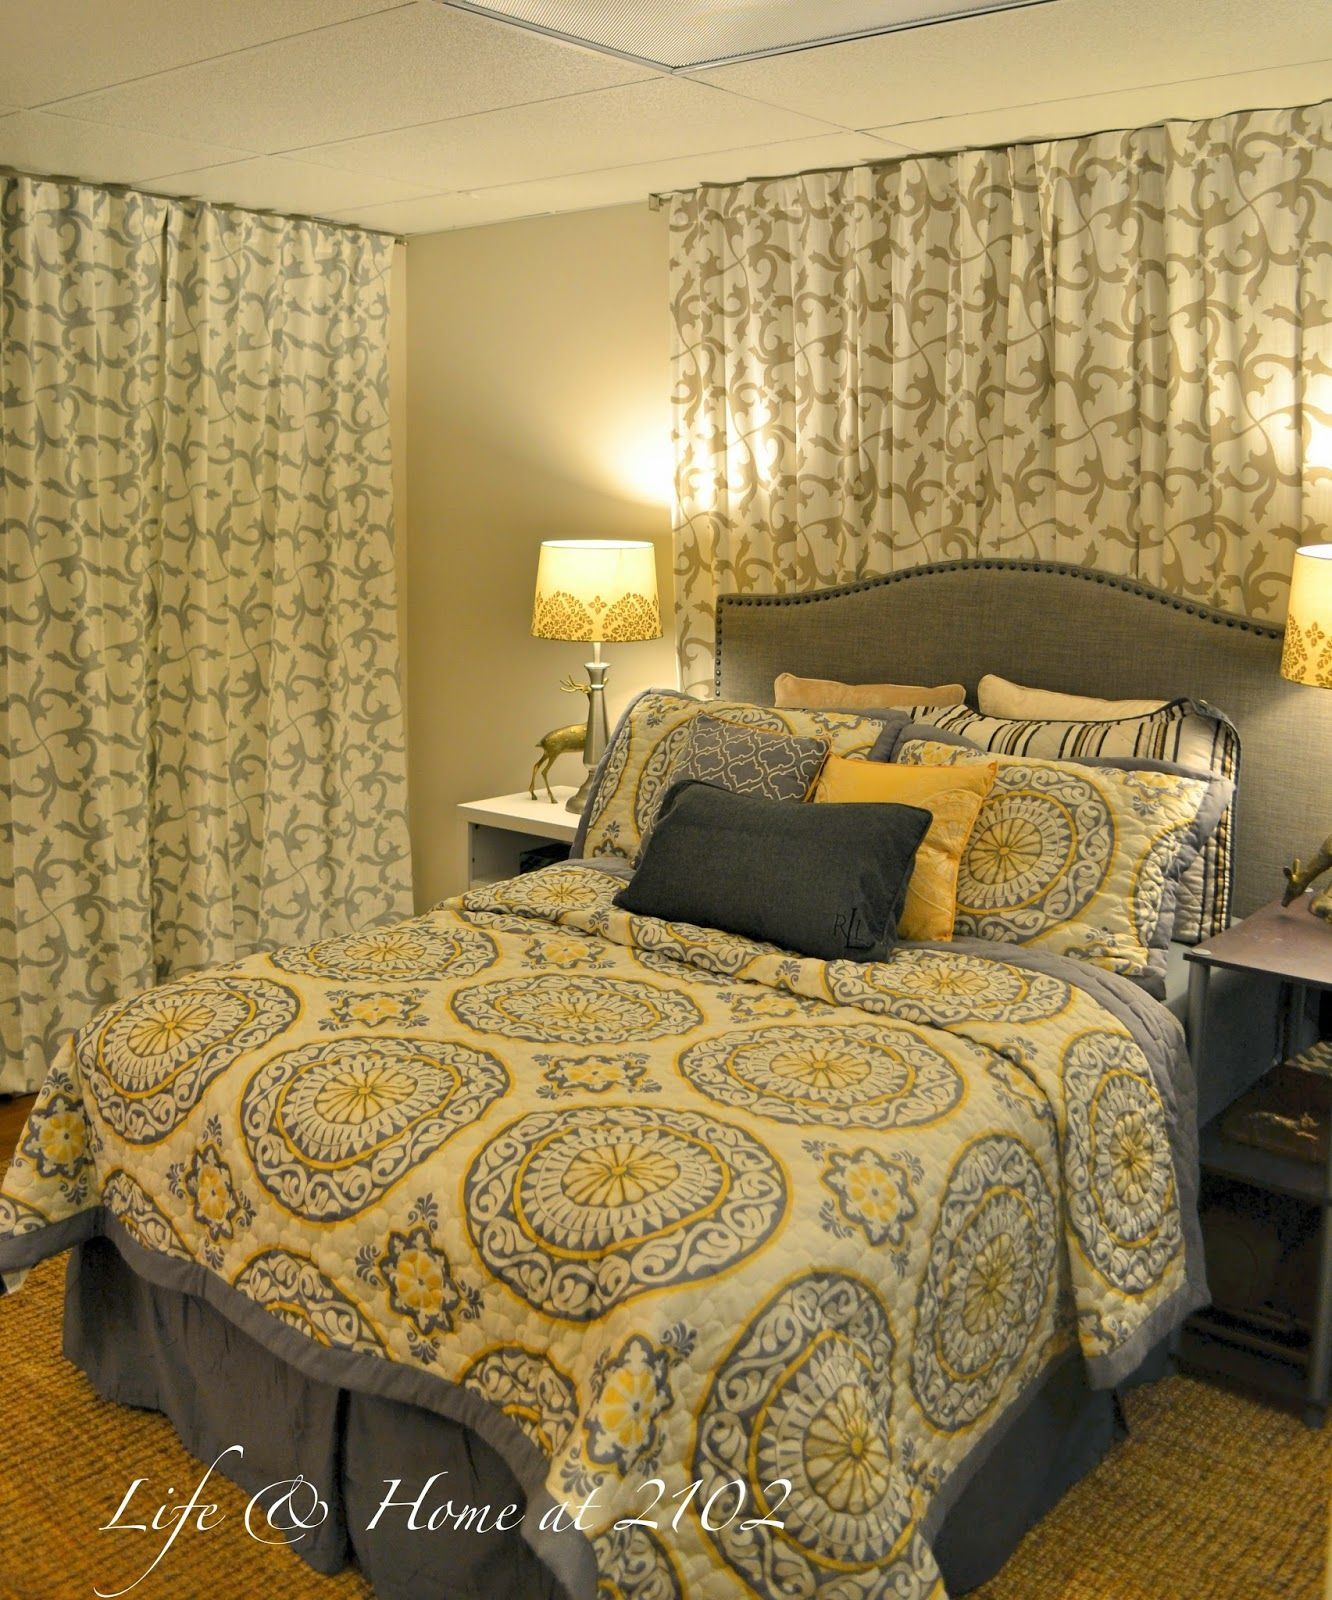 Bed with window behind it  guest bedroom makeover   marvelous makeovers   pinterest